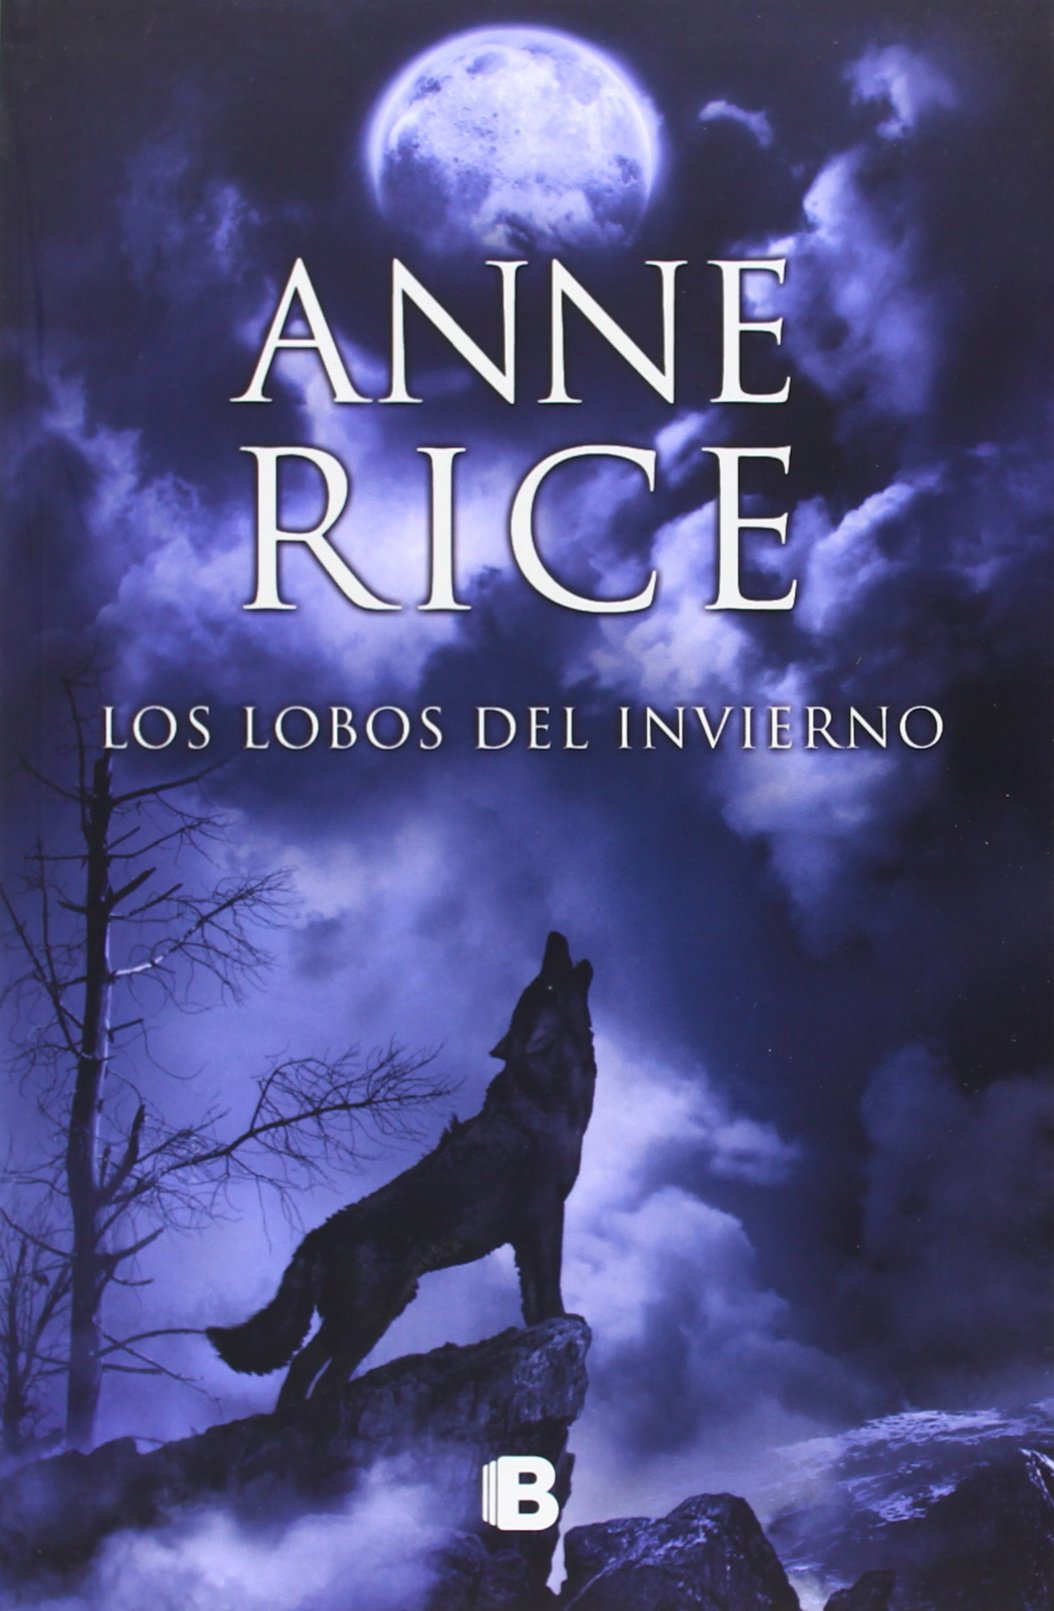 Los lobos del invierno (Crónicas del Lobo 2) (LA TRAMA) Tapa blanda – 4 jun 2014 Anne Rice 8466602232 California Northern; Fiction.